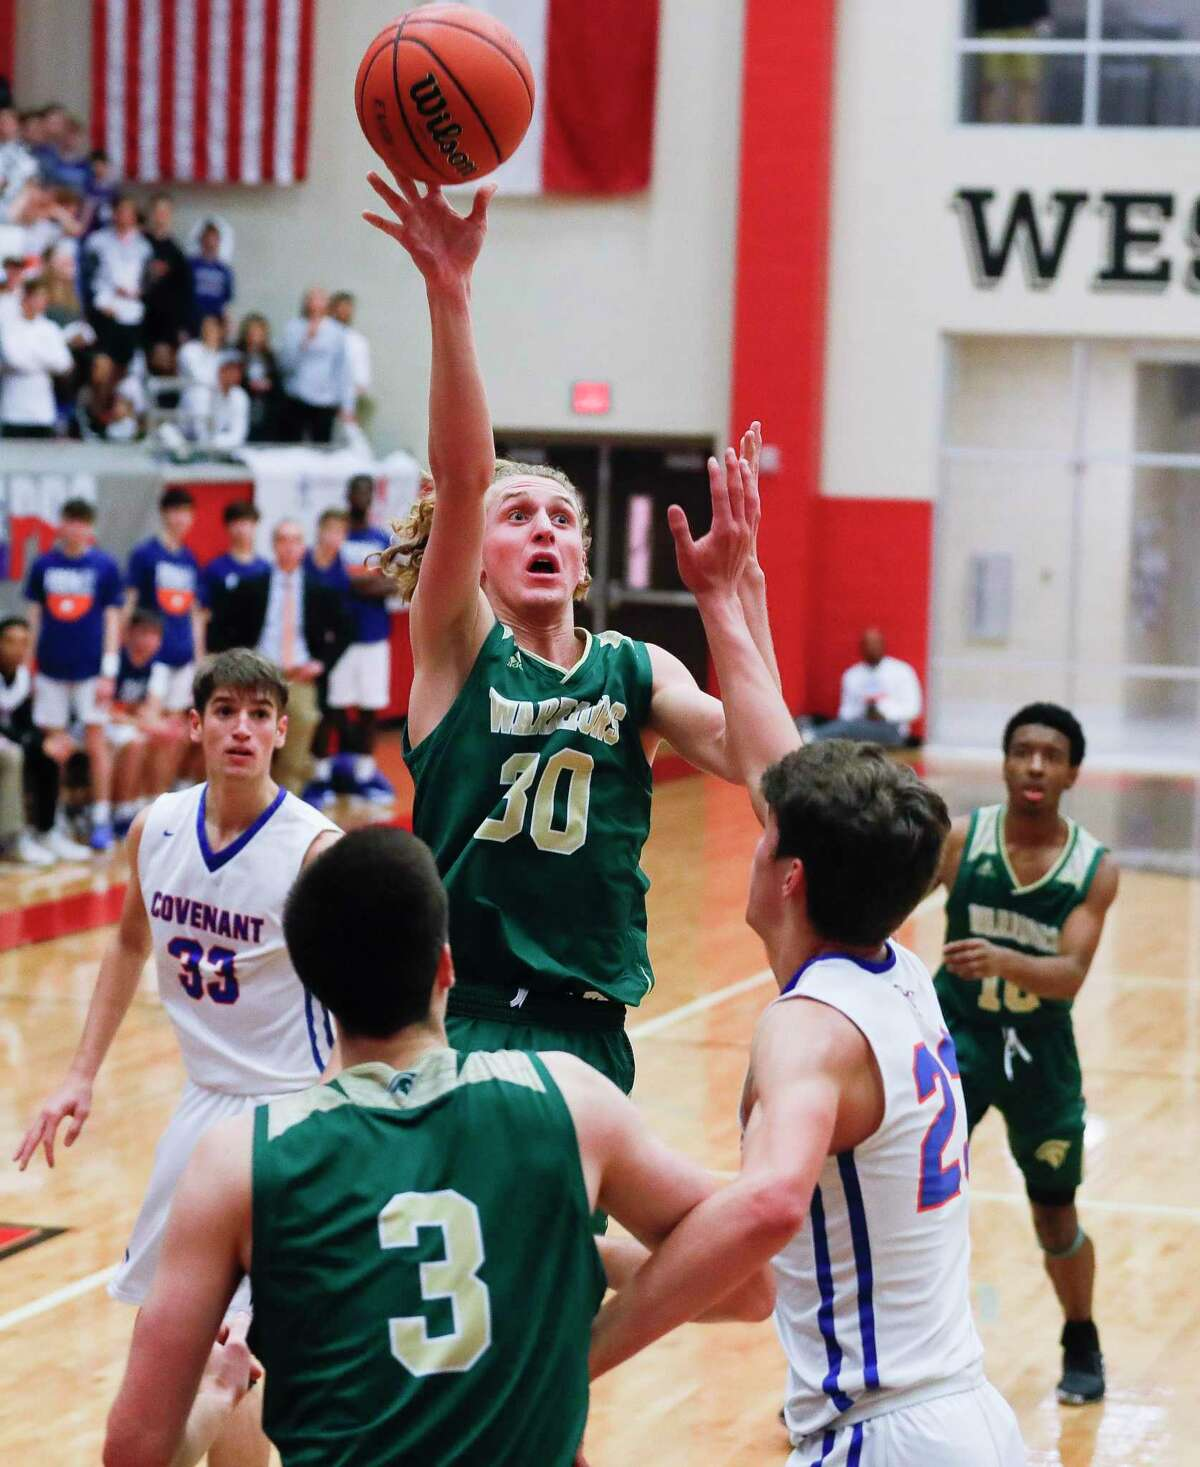 The Woodlands Christian Academy guard Luke Mansfield (30) shoots a floater during the third quarter of the TAPPS Class 4A high school basketball championship at West High School, Saturday, Feb. 29, 2020, in West.